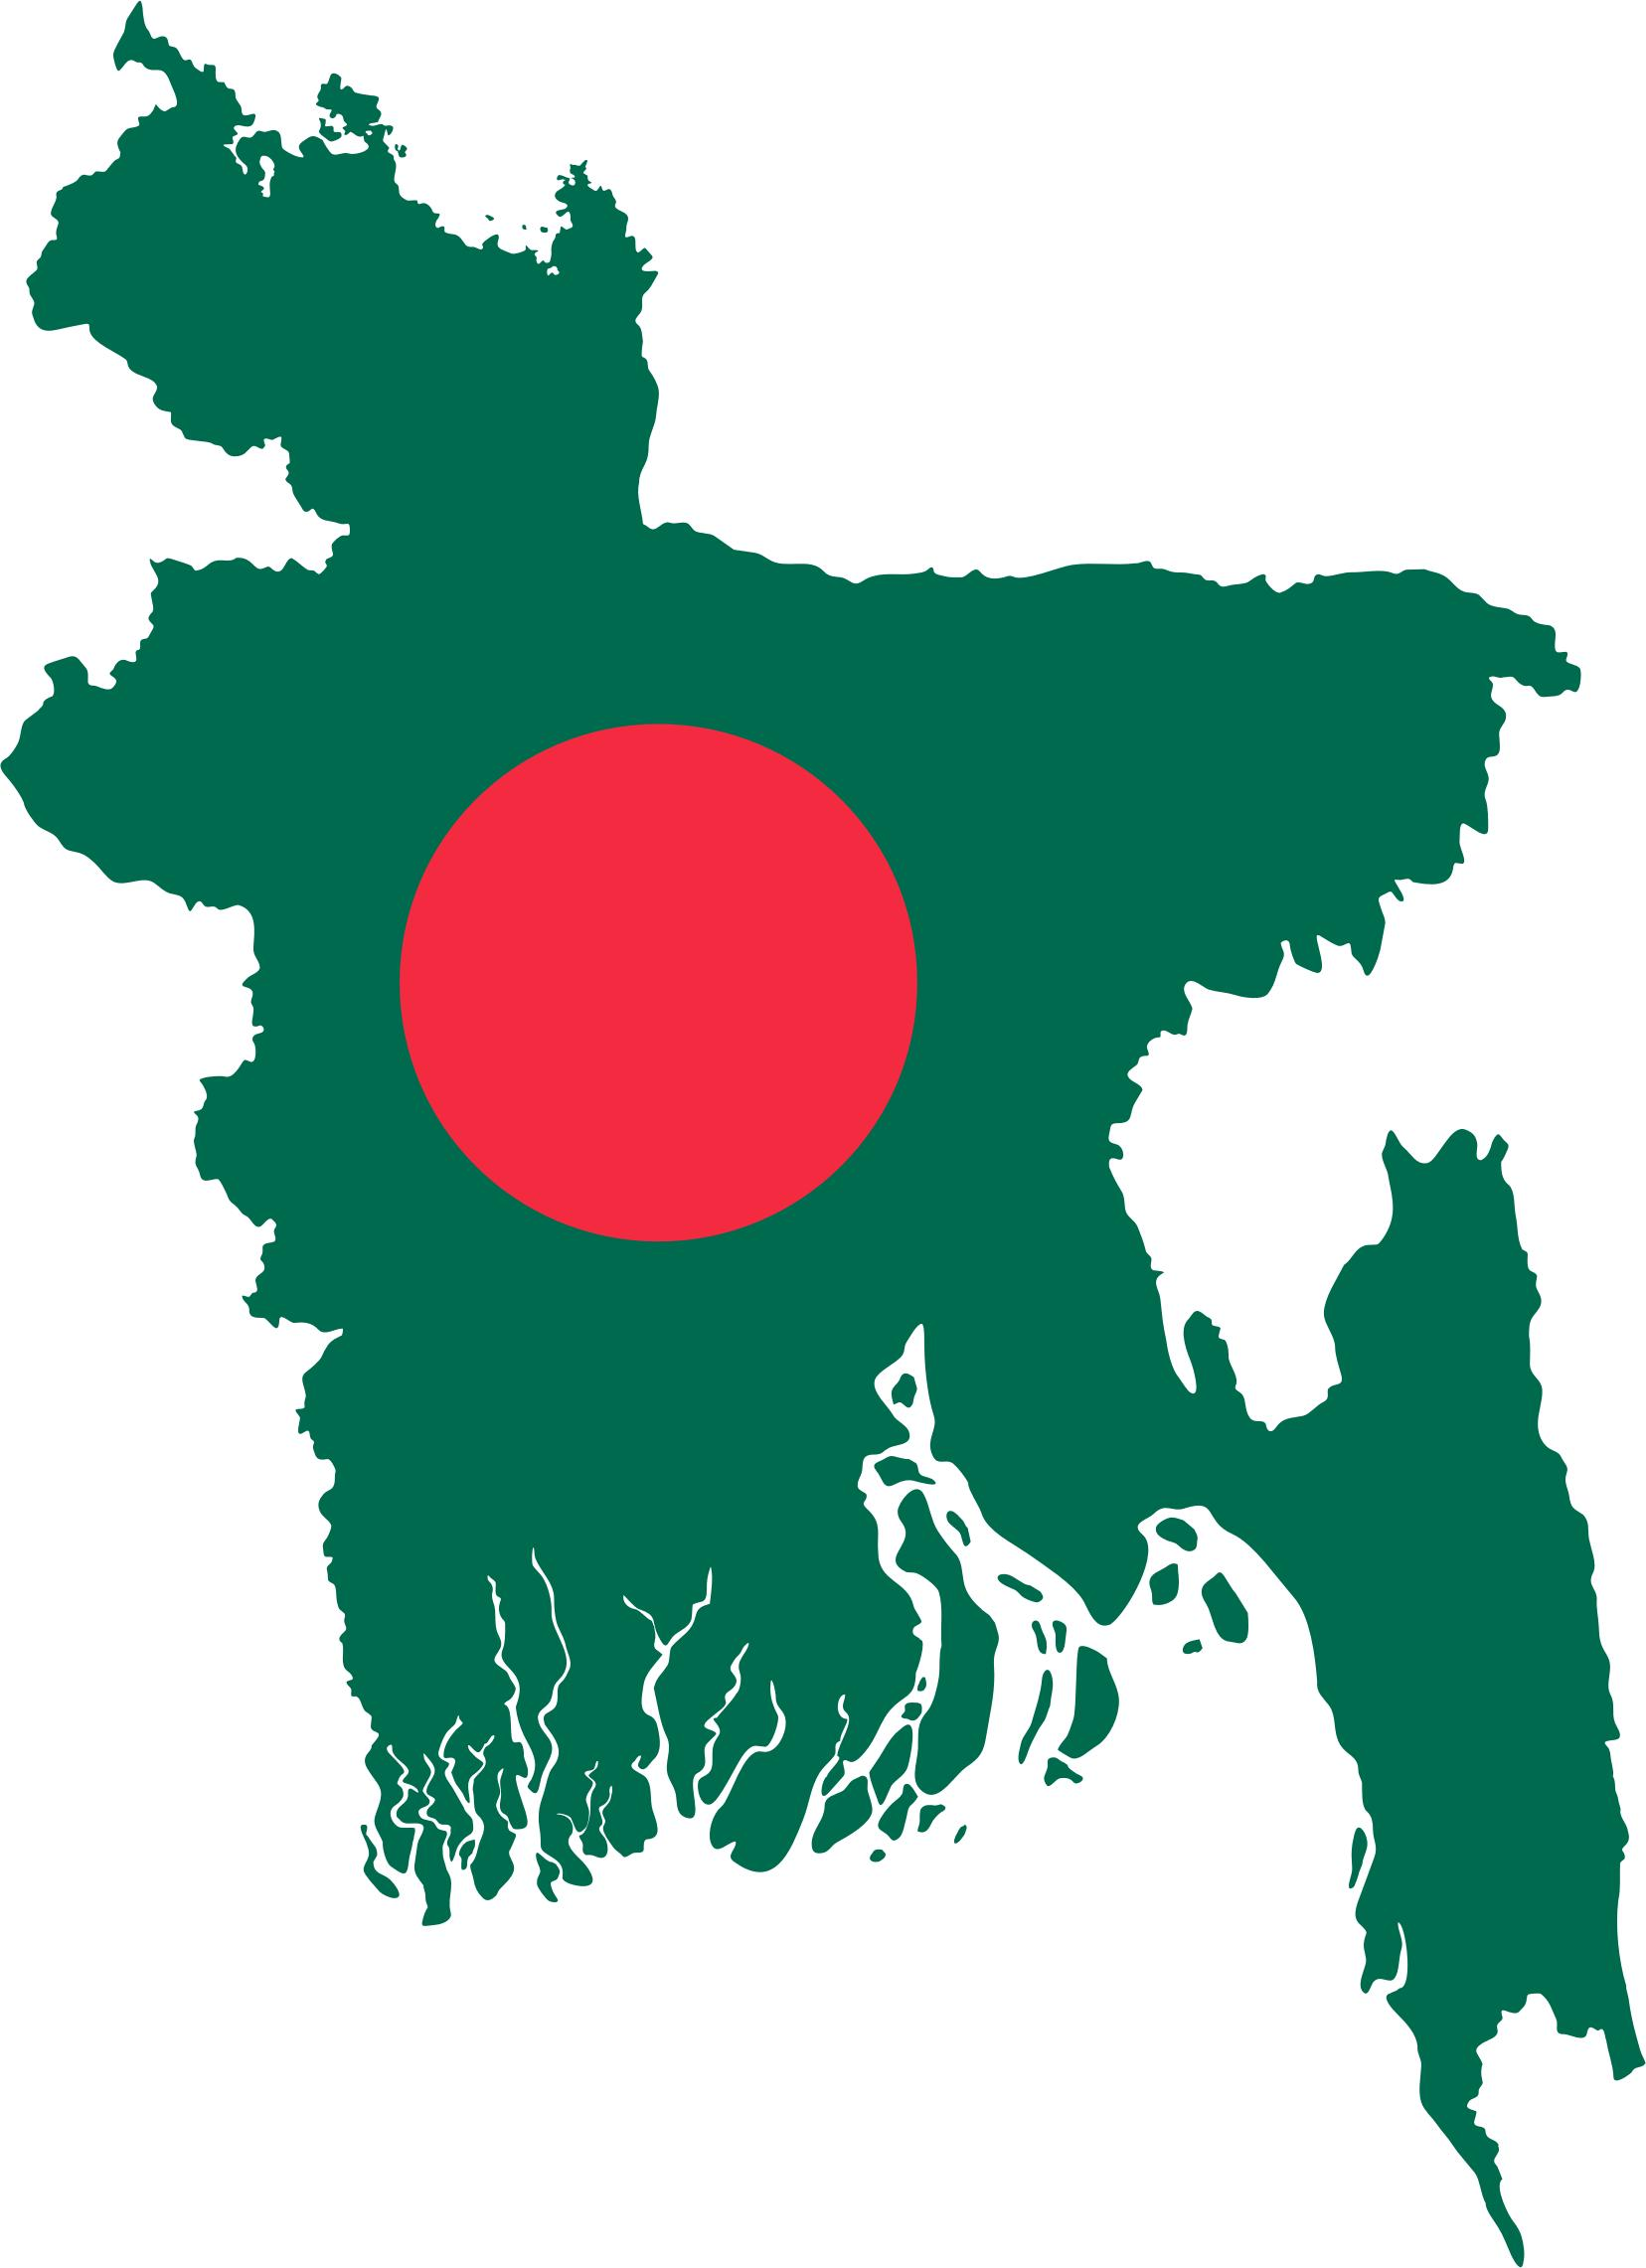 Bangladesh Map image